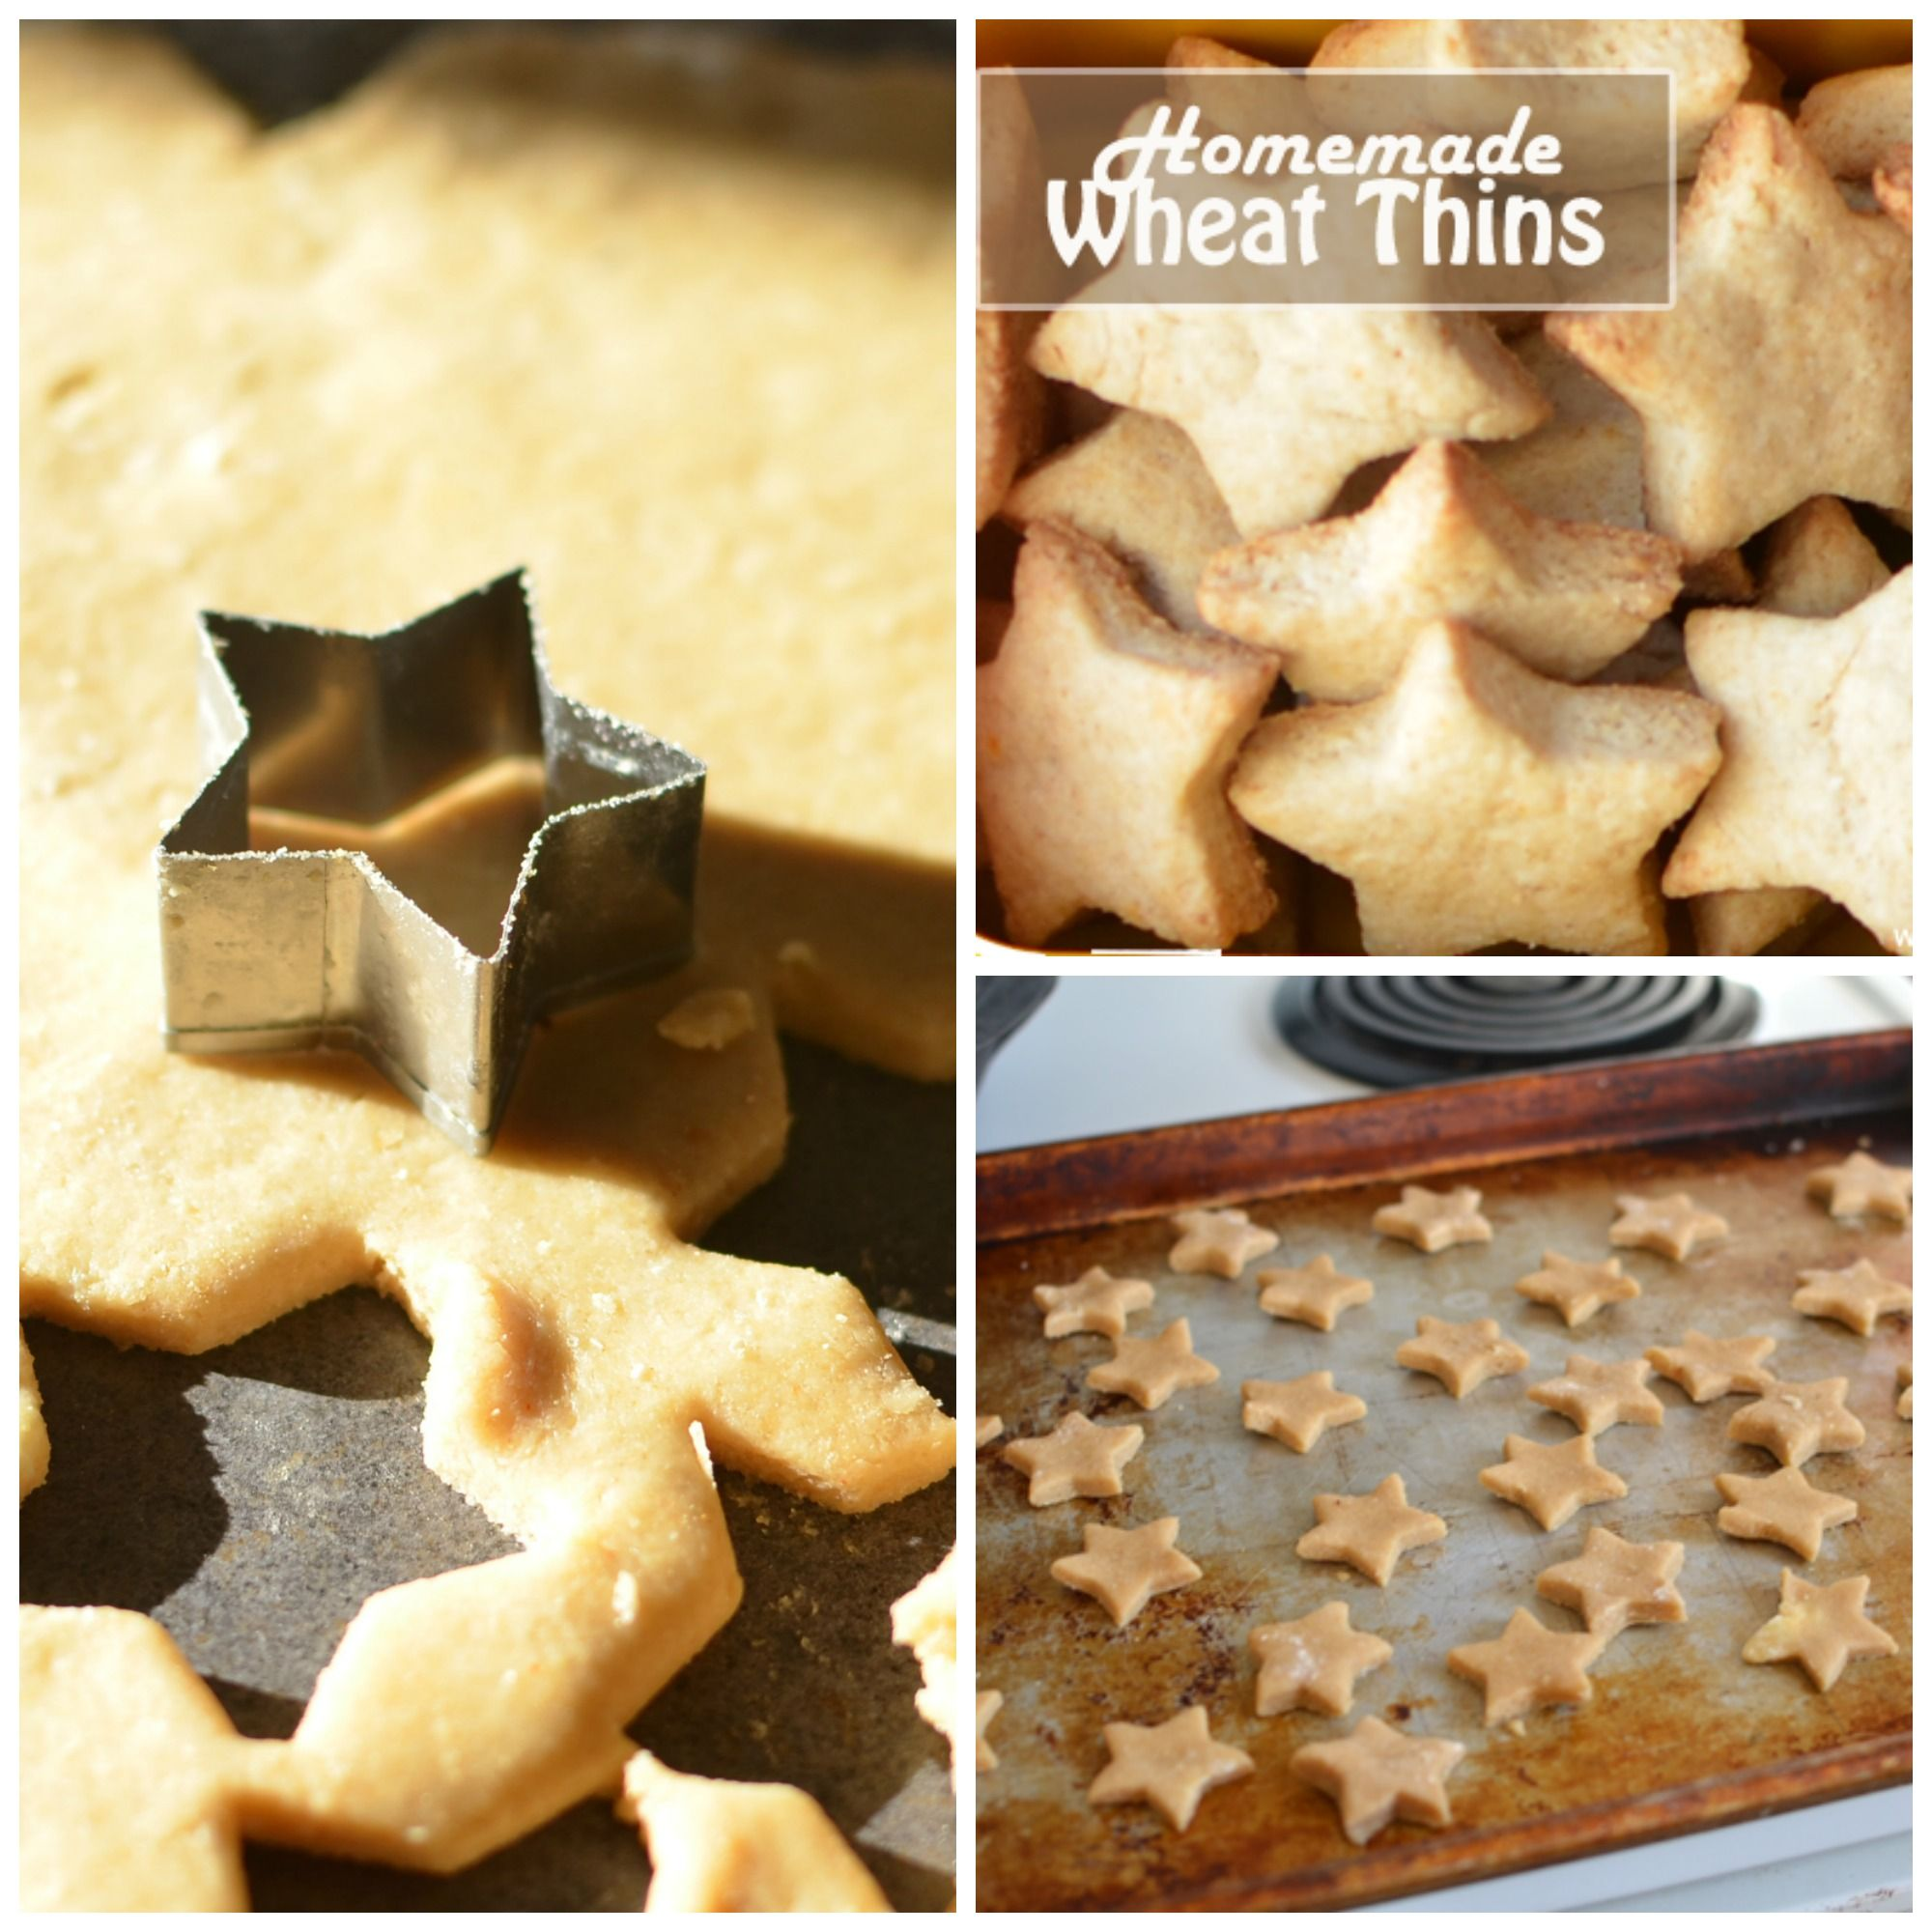 Have you ever tried making your own crackers we love making these have you ever tried making your own crackers we love making these homemade wheat thins solutioingenieria Image collections